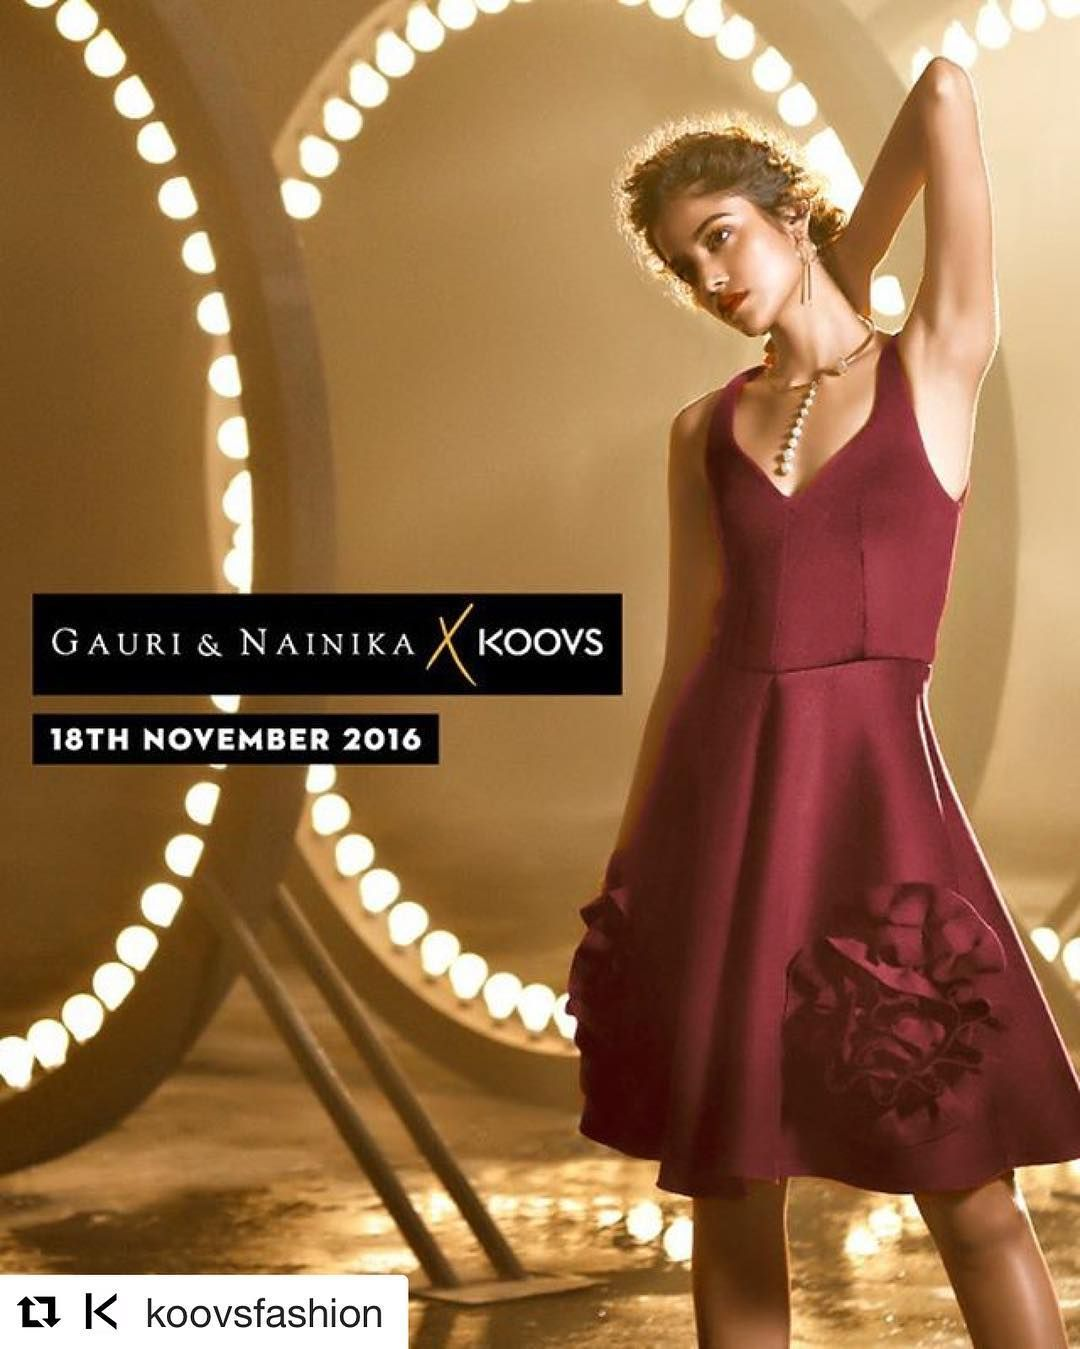 Tj Bhanu @tj_bhanu for @koovsfashion #Repost @koovsfashion with @repostapp  We are thrilled to announce our collaboration with designer duo @GauriAndNainika for the ultimate dress collection - #GauriNainikaXKOOVS!  Collection launches 18th November at KOOVS.COM Girls are you ready?  #gauriandnainika #designer #collaboration #dresses #gowns #redcarpet #glam #fashion #style #party #shopping #KOOVS